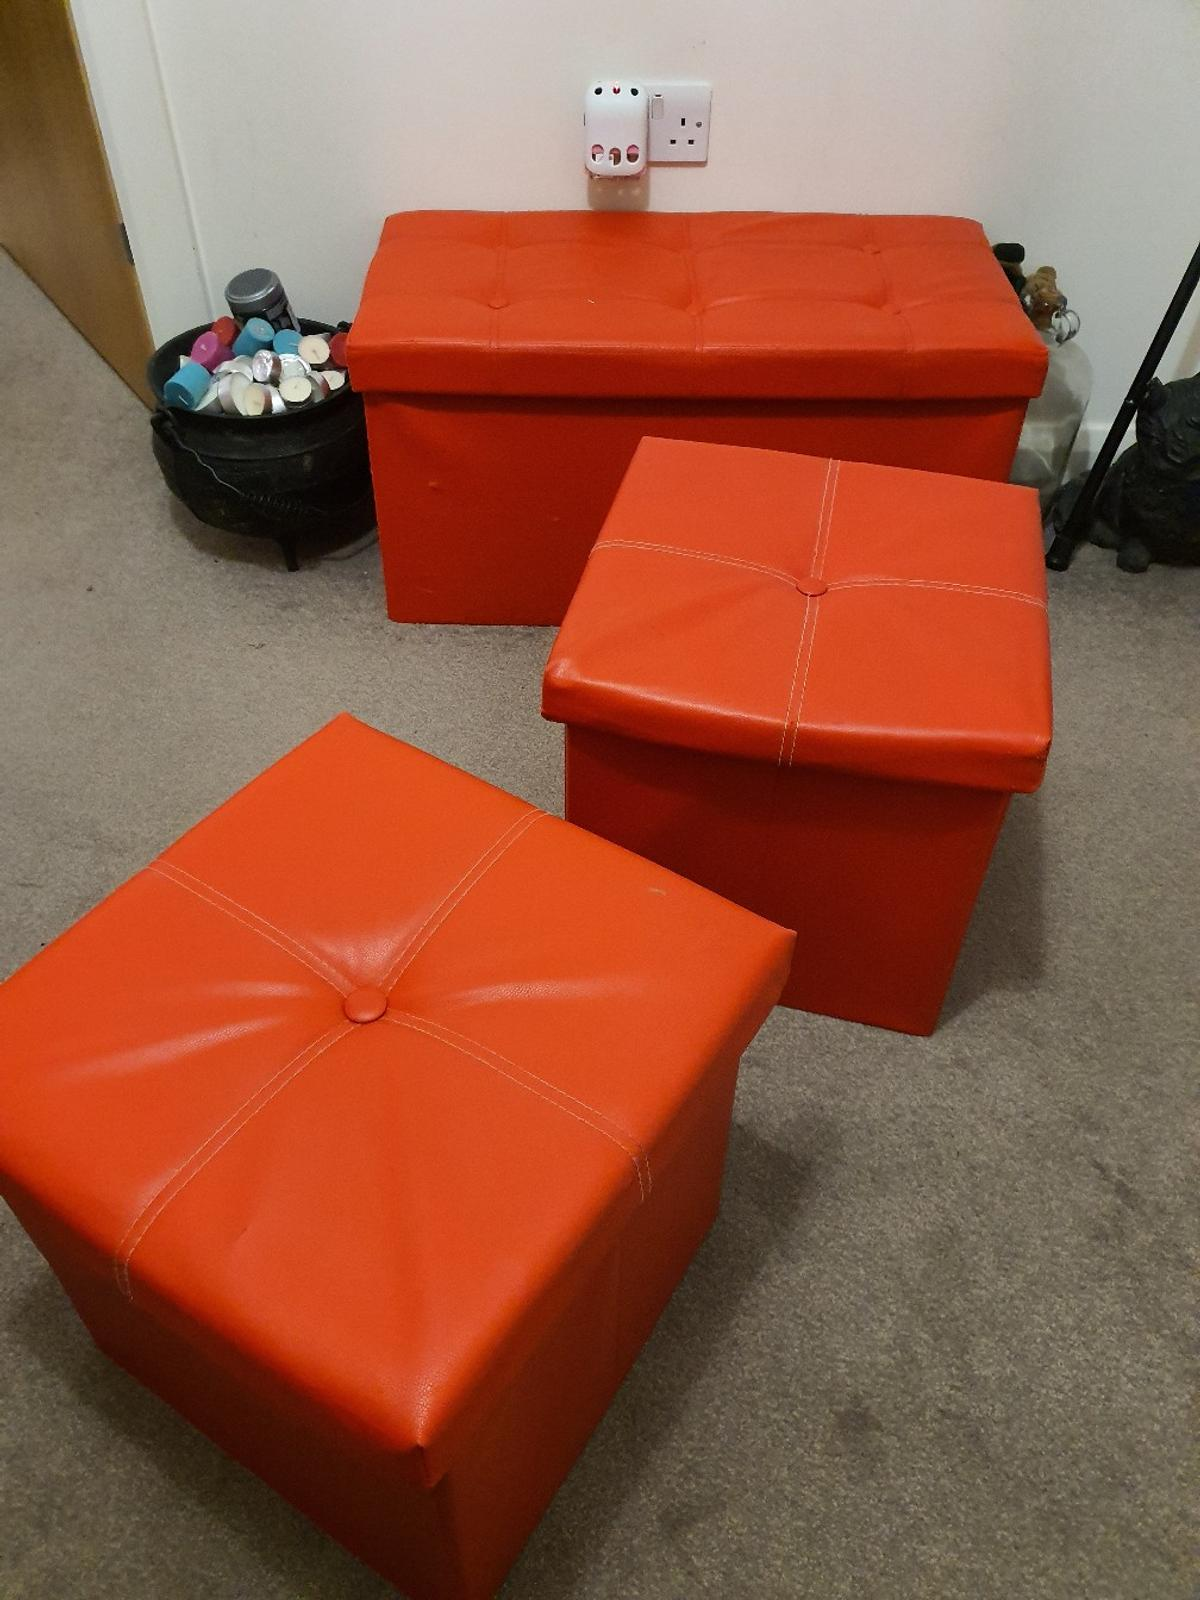 3 Red Storage Boxes can be used for sitting on as well imitation leather sizes small ones 15cmx15cmx15cm large one 29 cm length 37cm width 38 cm height can deliver if local in gravesend